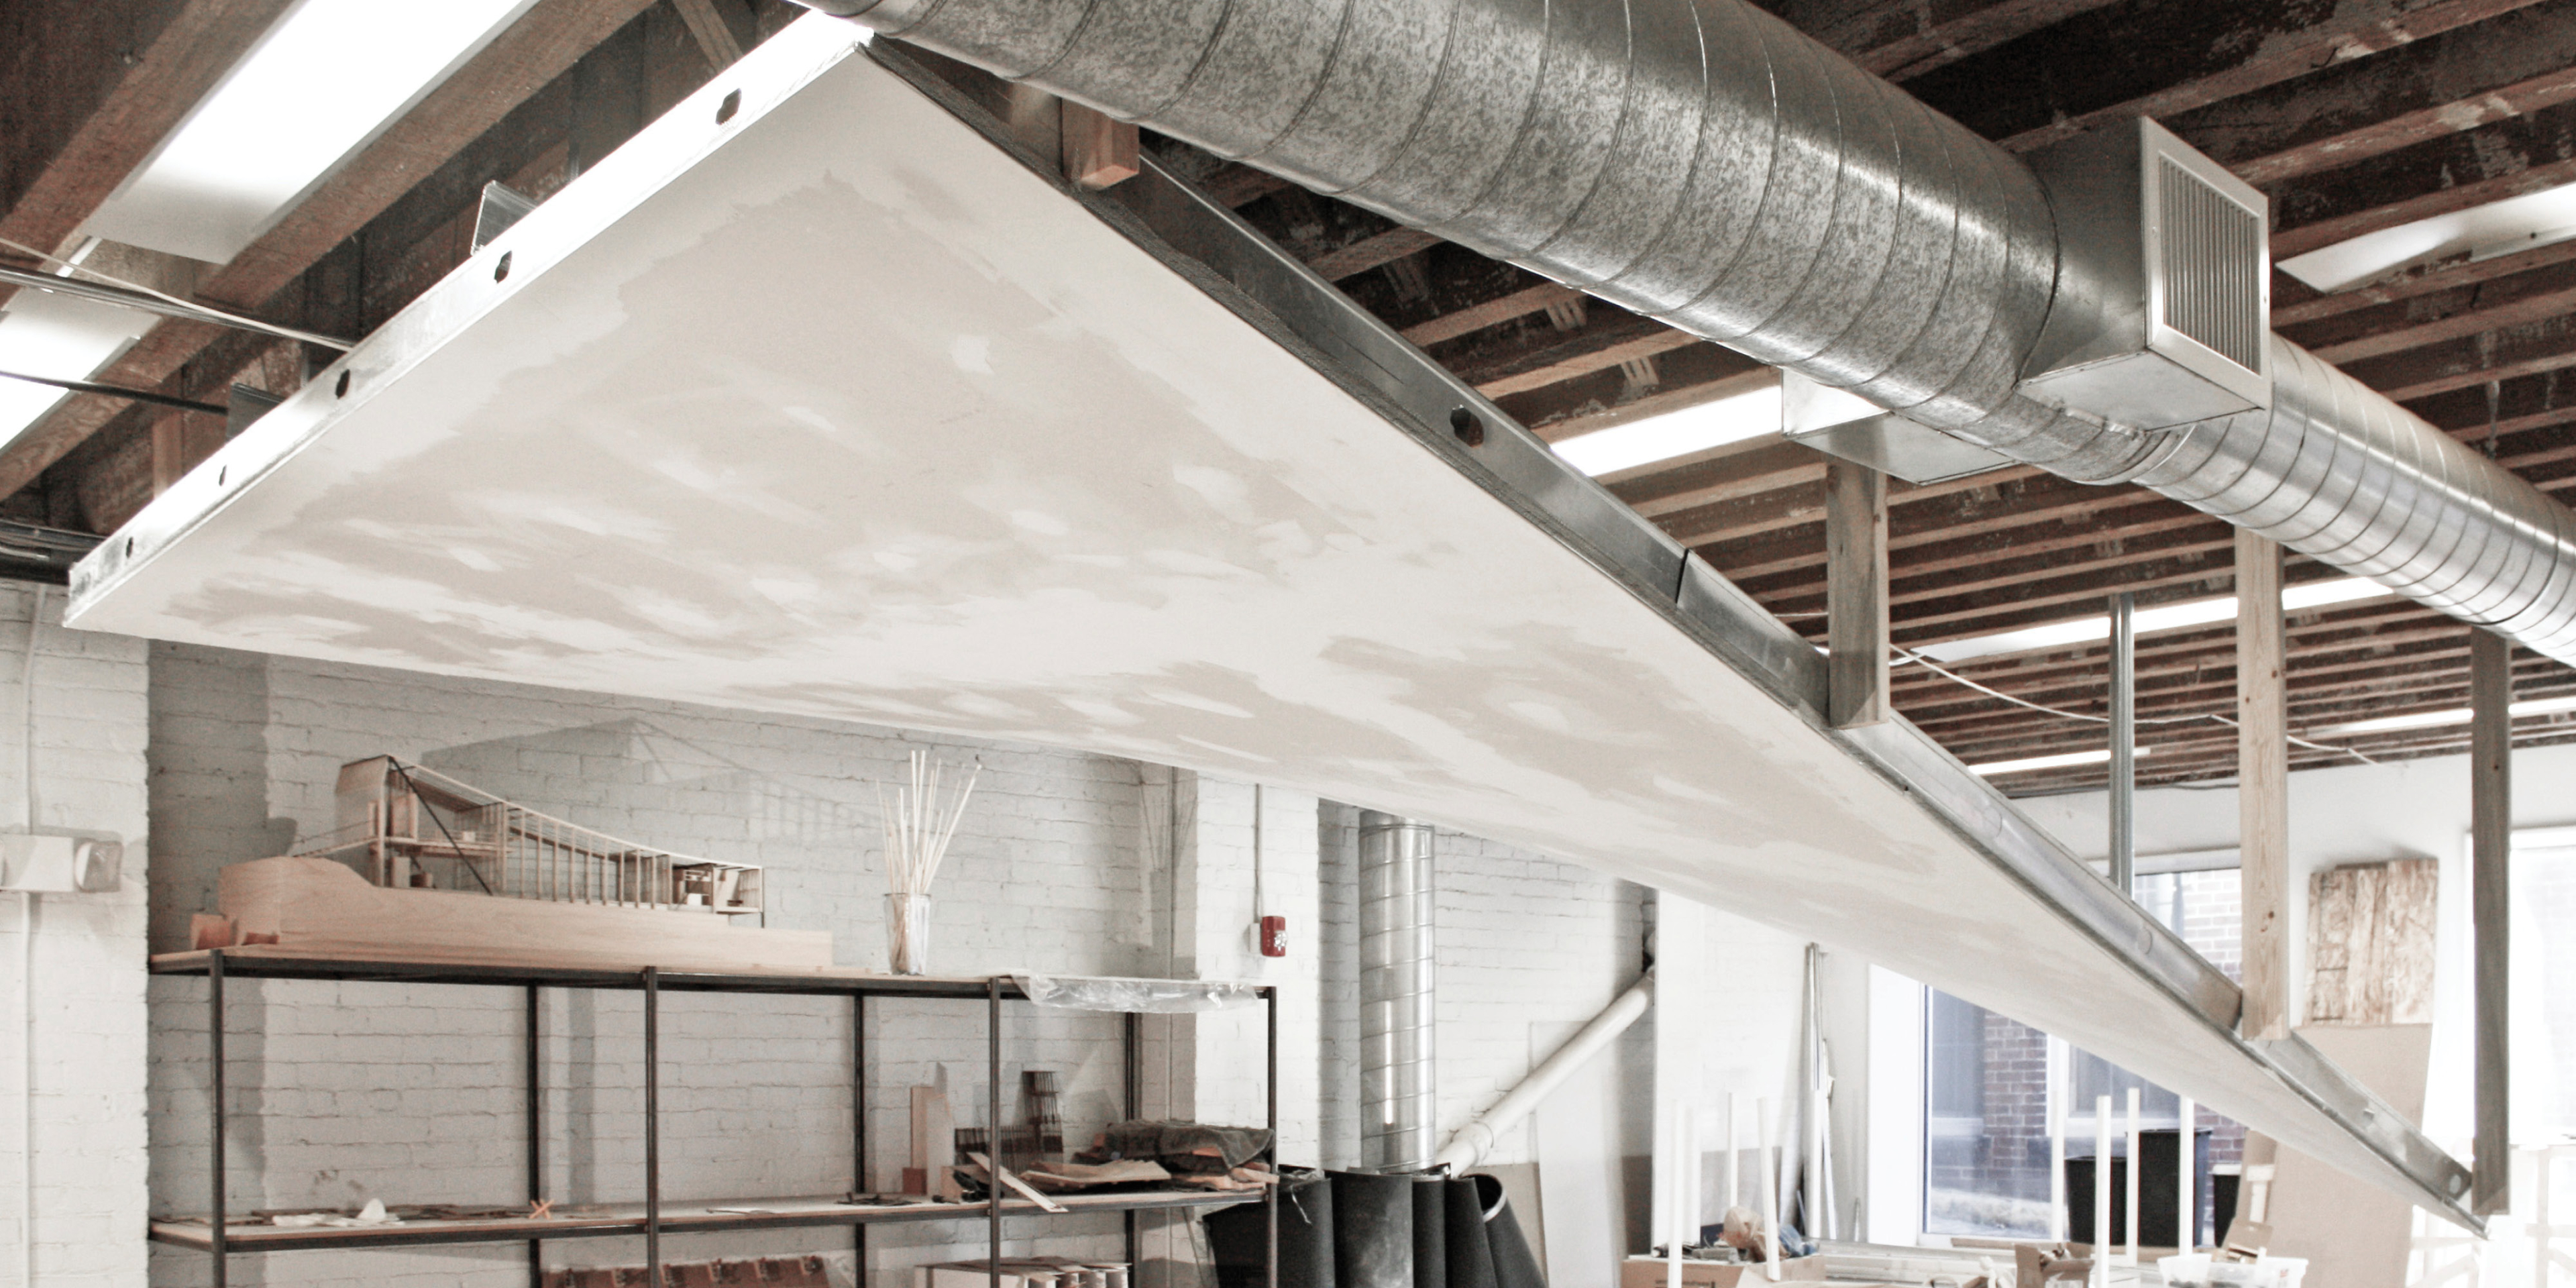 CASE STUDIES: DFALD CURVED RADIANT CEILING TEST